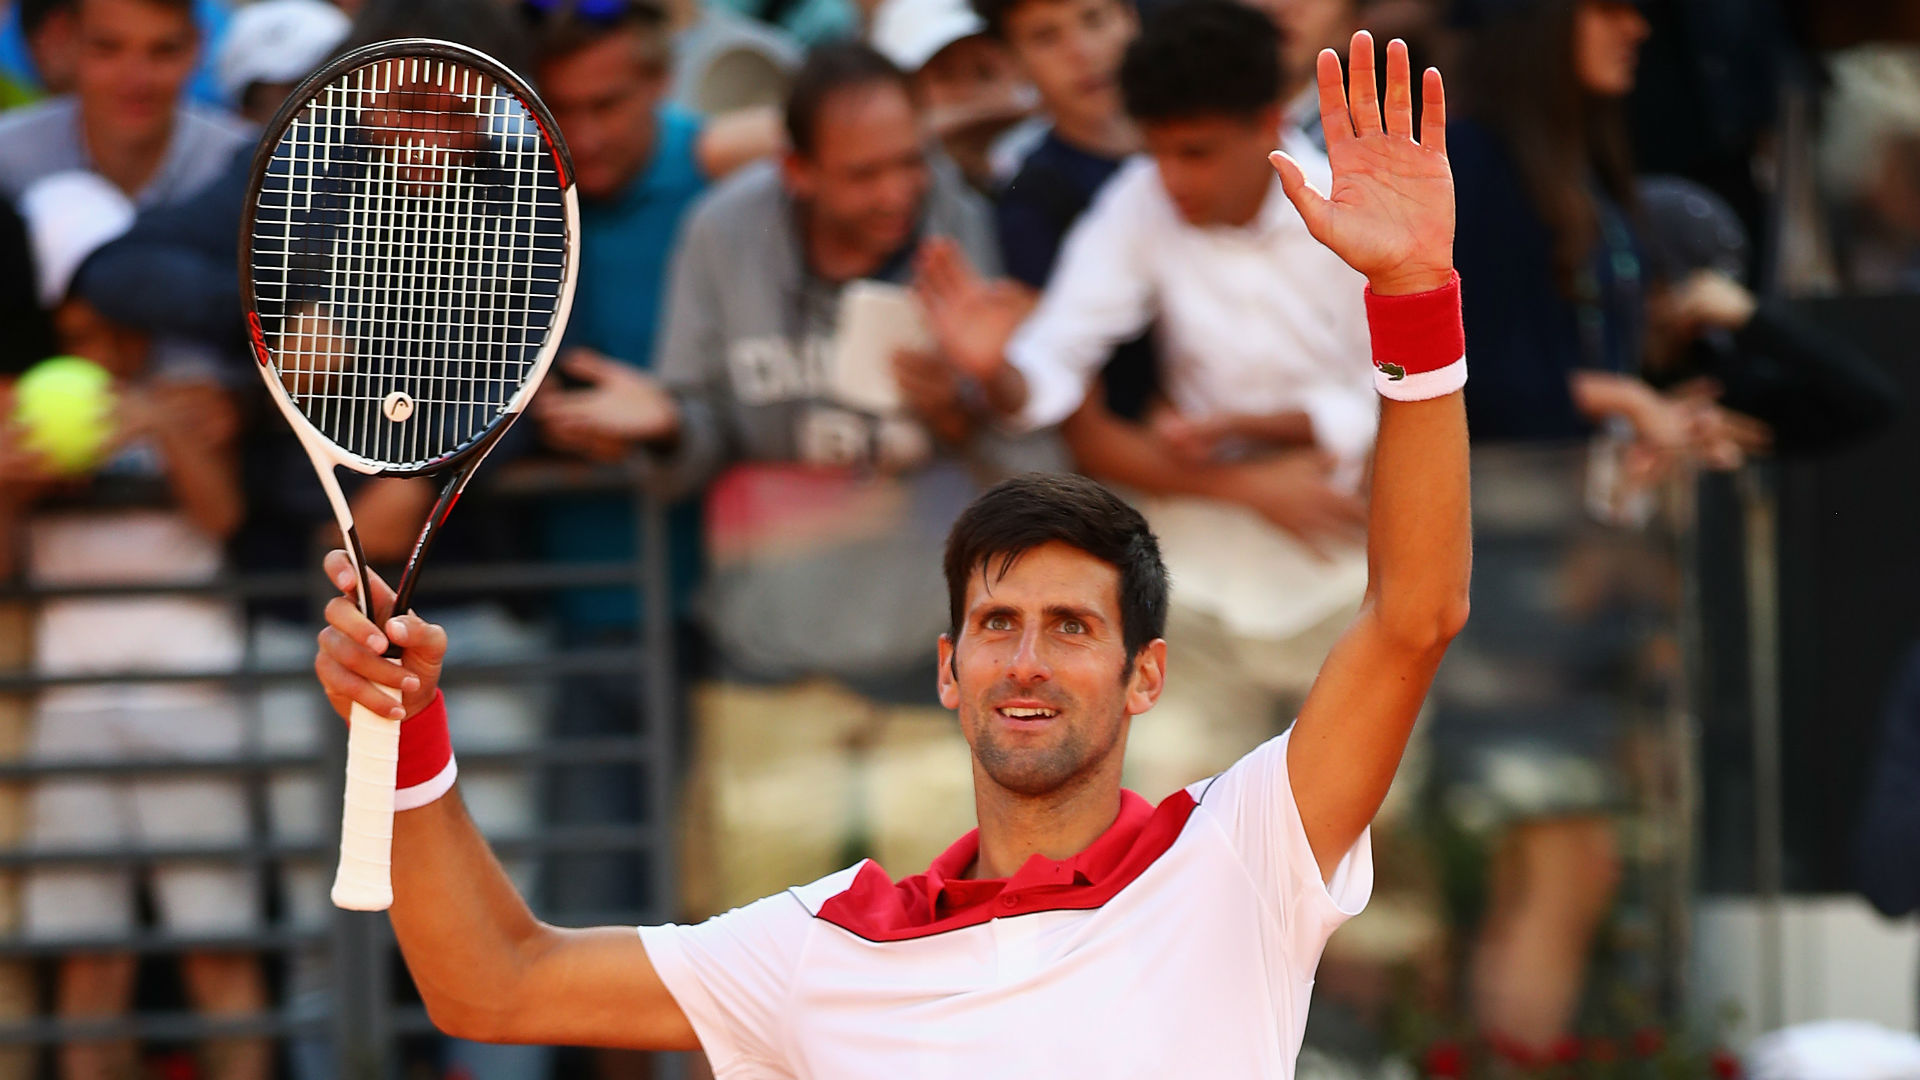 Solid start for Djokovic in Rome